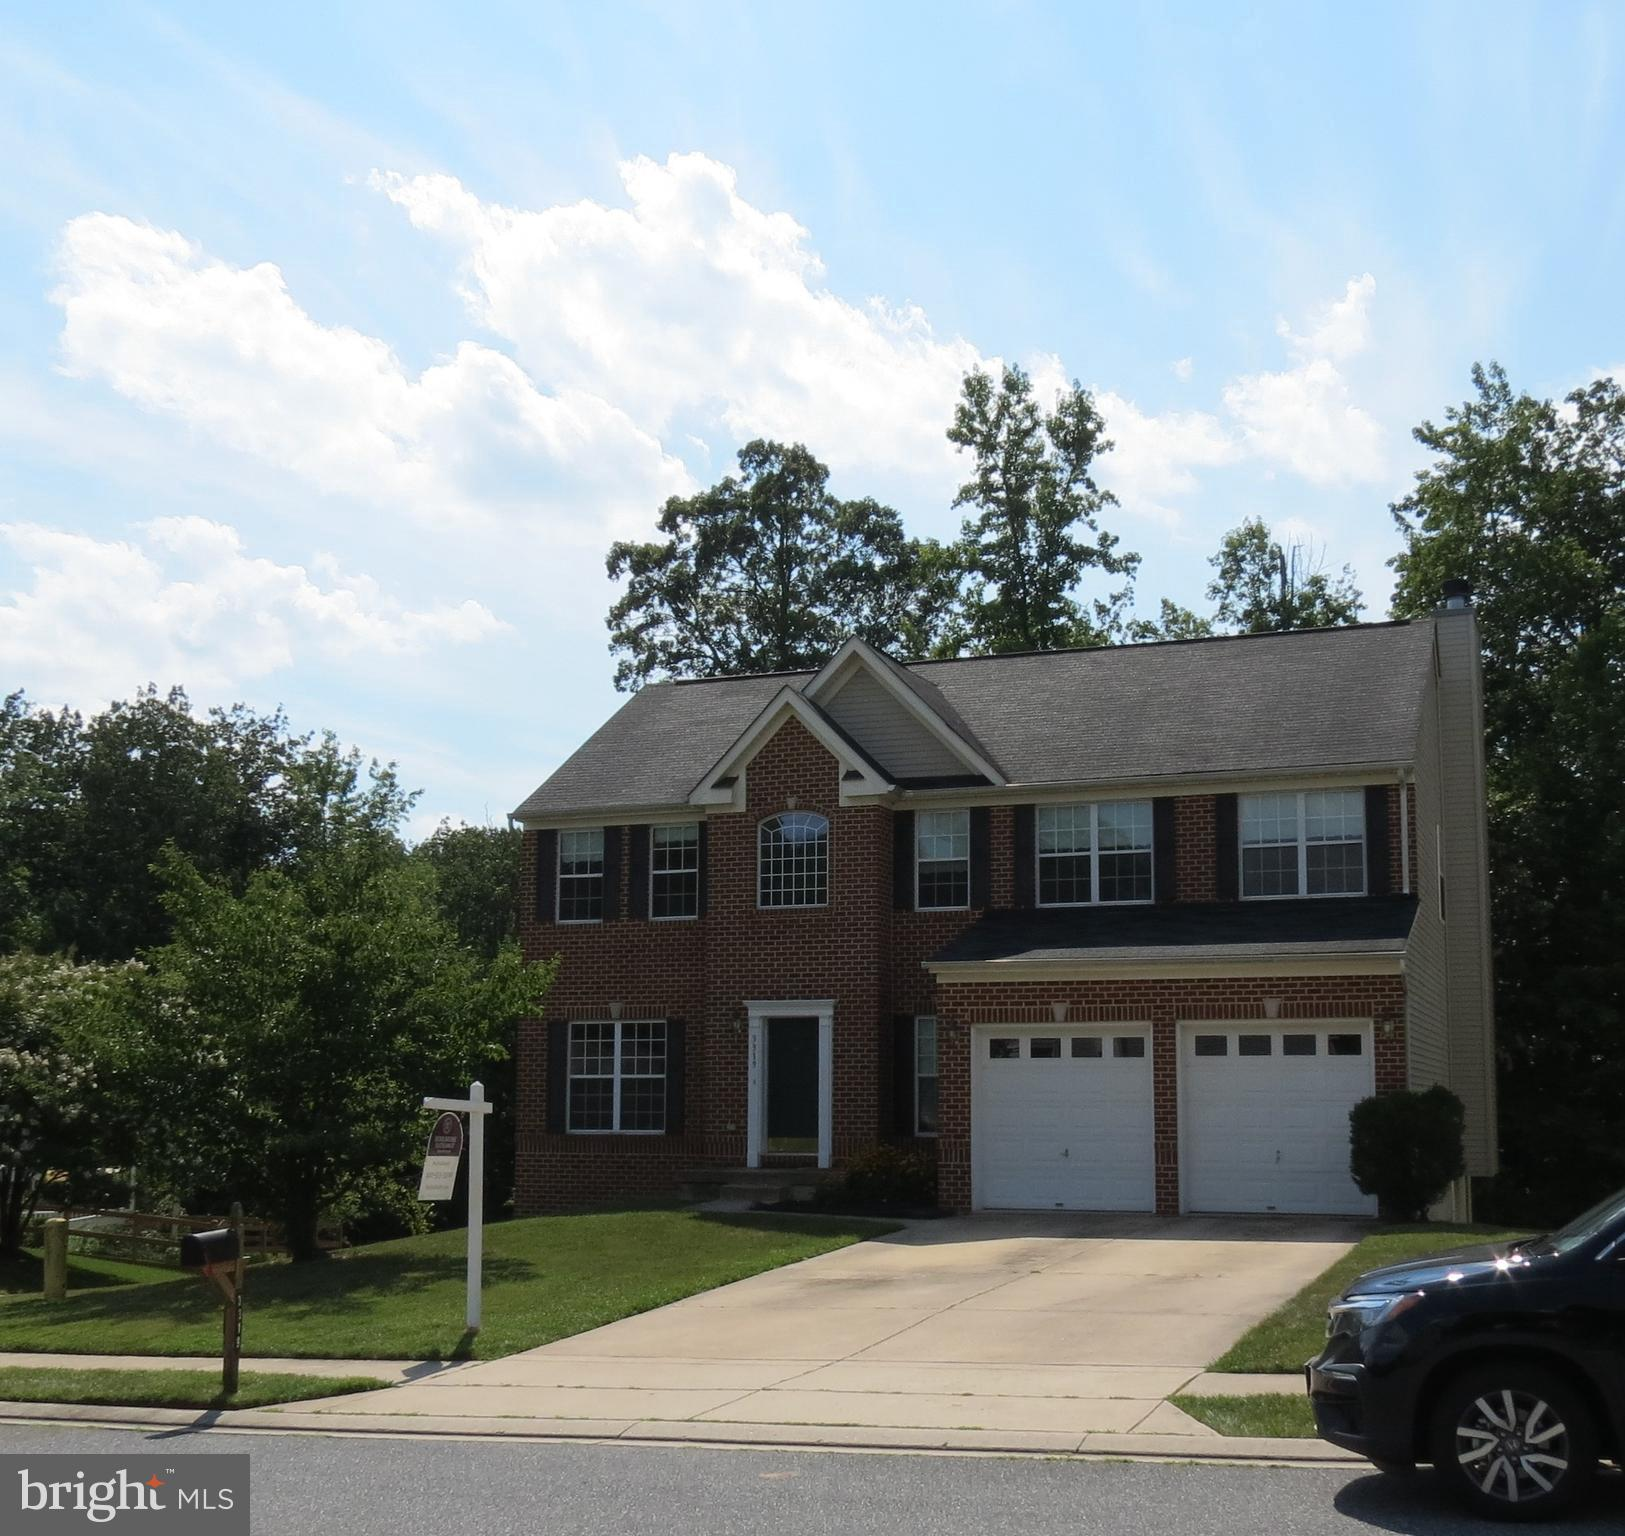 Welcome to Cokesbury Manor – 5 bedroom 3.5 bath Brick Front Colonial home features a stunning deck backing to woods on protected land – natural gas & electric. 4 Bedrooms with generous closets on Upper level including the Primary bedroom (2 walk in closets) and attached spacious ensuite. Eat-in kitchen opens to deck and Family room complete with wood burning fireplace. Finished walk-out basement includes several flexible spaces including a bedroom & full bath. 75 Gallon Hot water Heater. New carpet & fresh paint throughout. Dual Zone HVAC w/ service plan through May 2022 (upstairs heat pump 2014 - lower level 2019). Cinch Home Warranty. Beautiful walking trails maintained by the HOA. This peaceful, scenic neighborhood is located minutes from I-95, Rt 40, APG, schools, shopping & more.